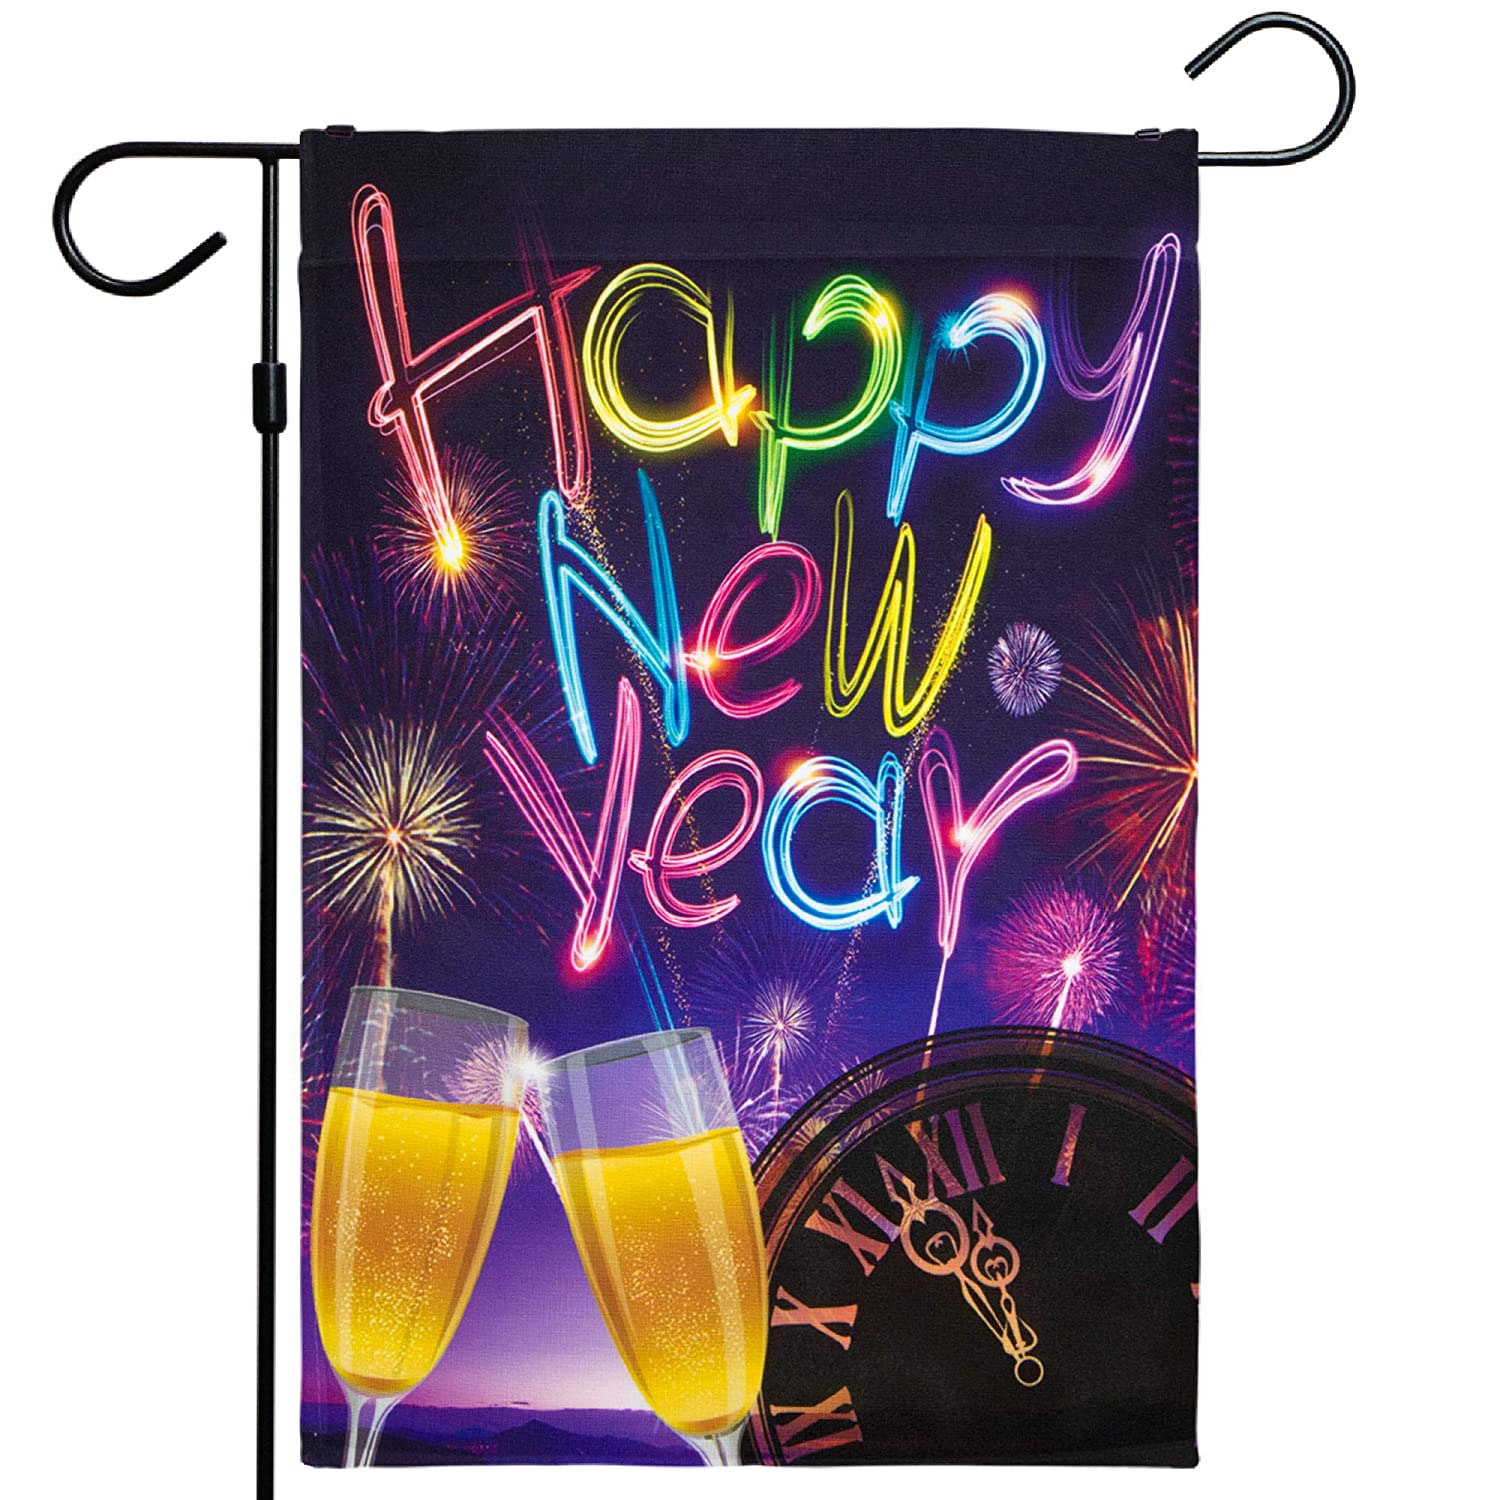 G128 - Happy New Year Garden Flag, New Year Themed Decorations - Fireworks and Champagne, Rustic Holiday Seasonal Outdoor Flag 12